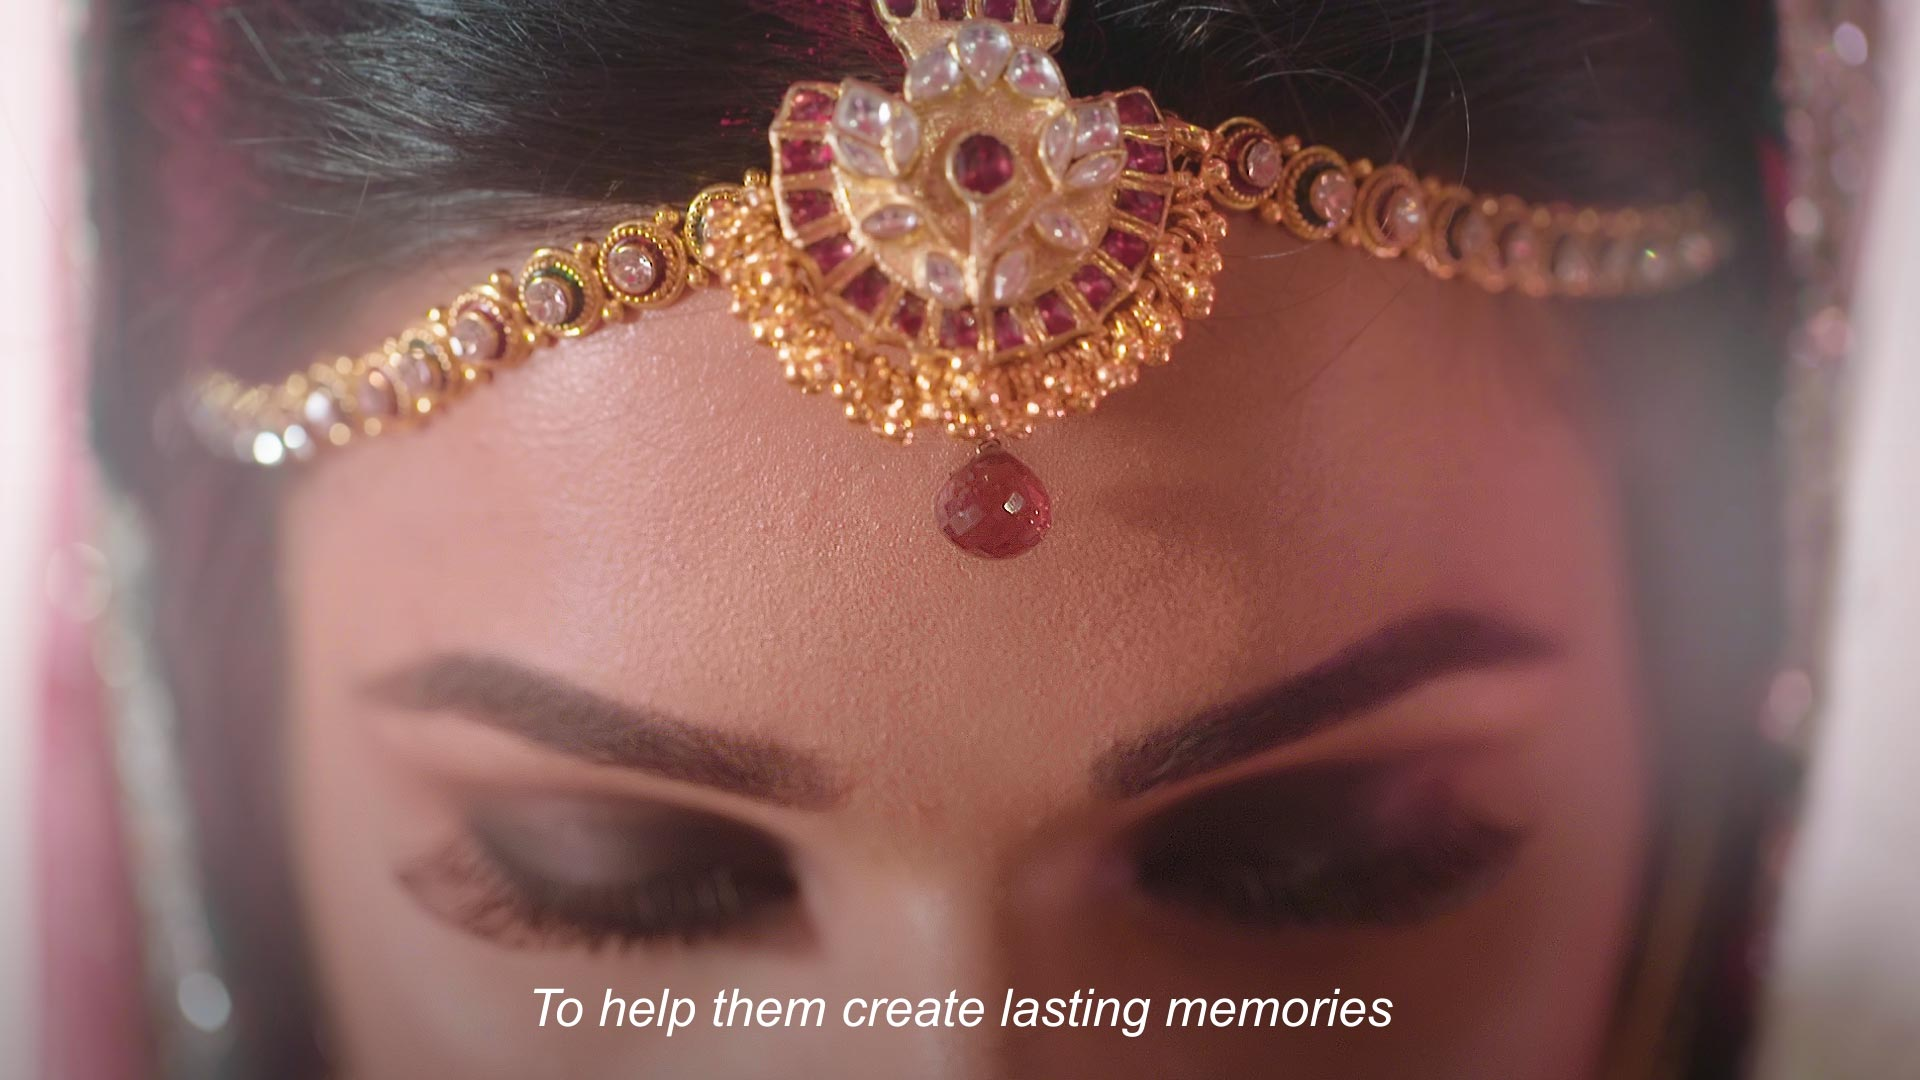 An Indian woman in a head dress